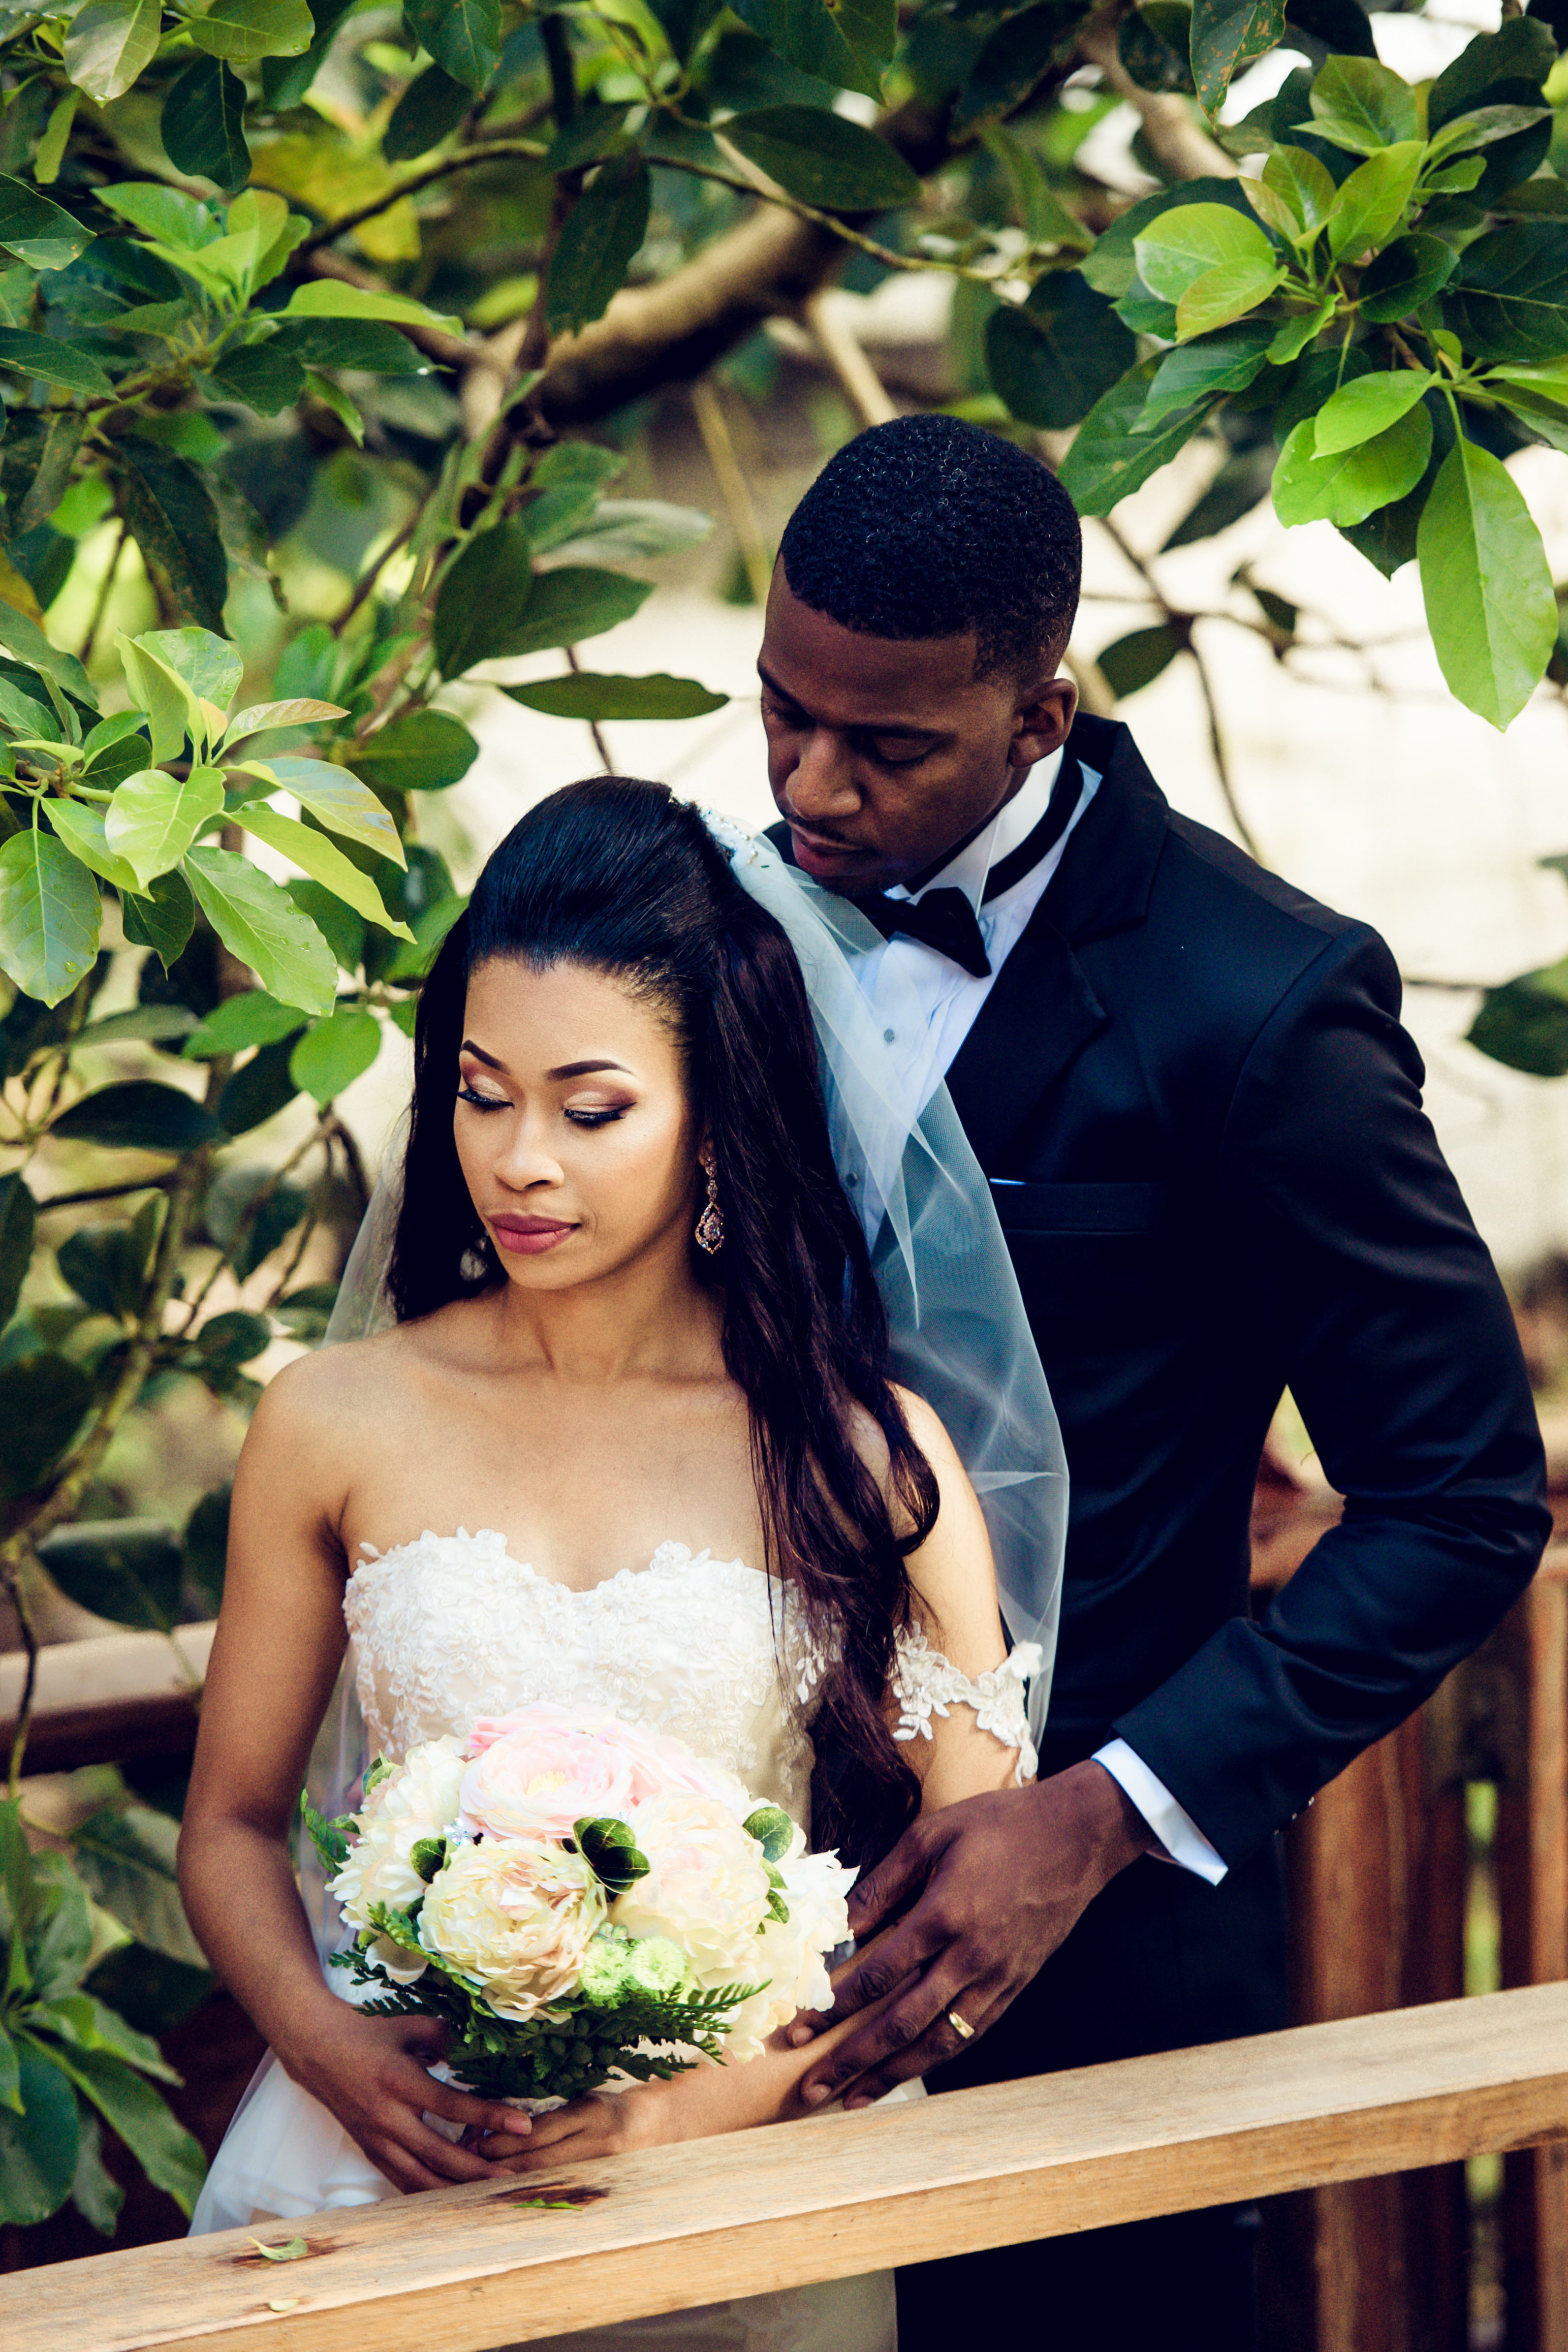 A Sentimental Garden Wedding in Trinidad and Tobago, Photography by Francis Chu Foon Photography for Destination Wedding Blog Adriana Weddings